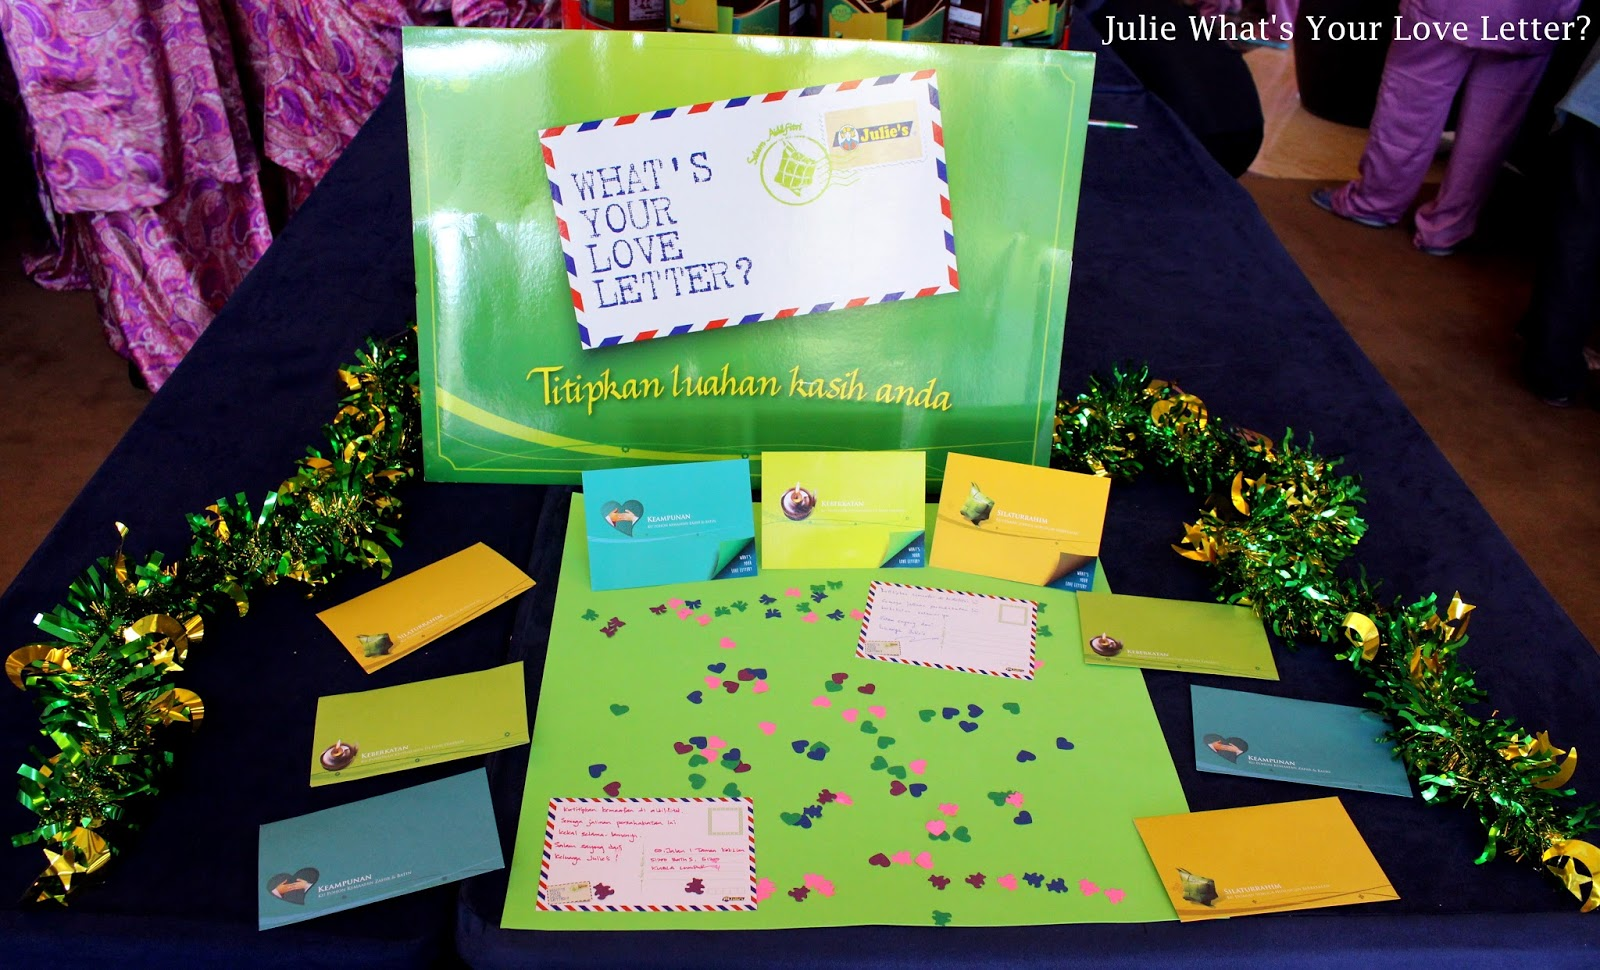 Celebrate hari raya with julies love letters life is an back to the launched event which was held at sime darby convention centre guests were given a chance to write message on julies raya postcard and julies kristyandbryce Image collections